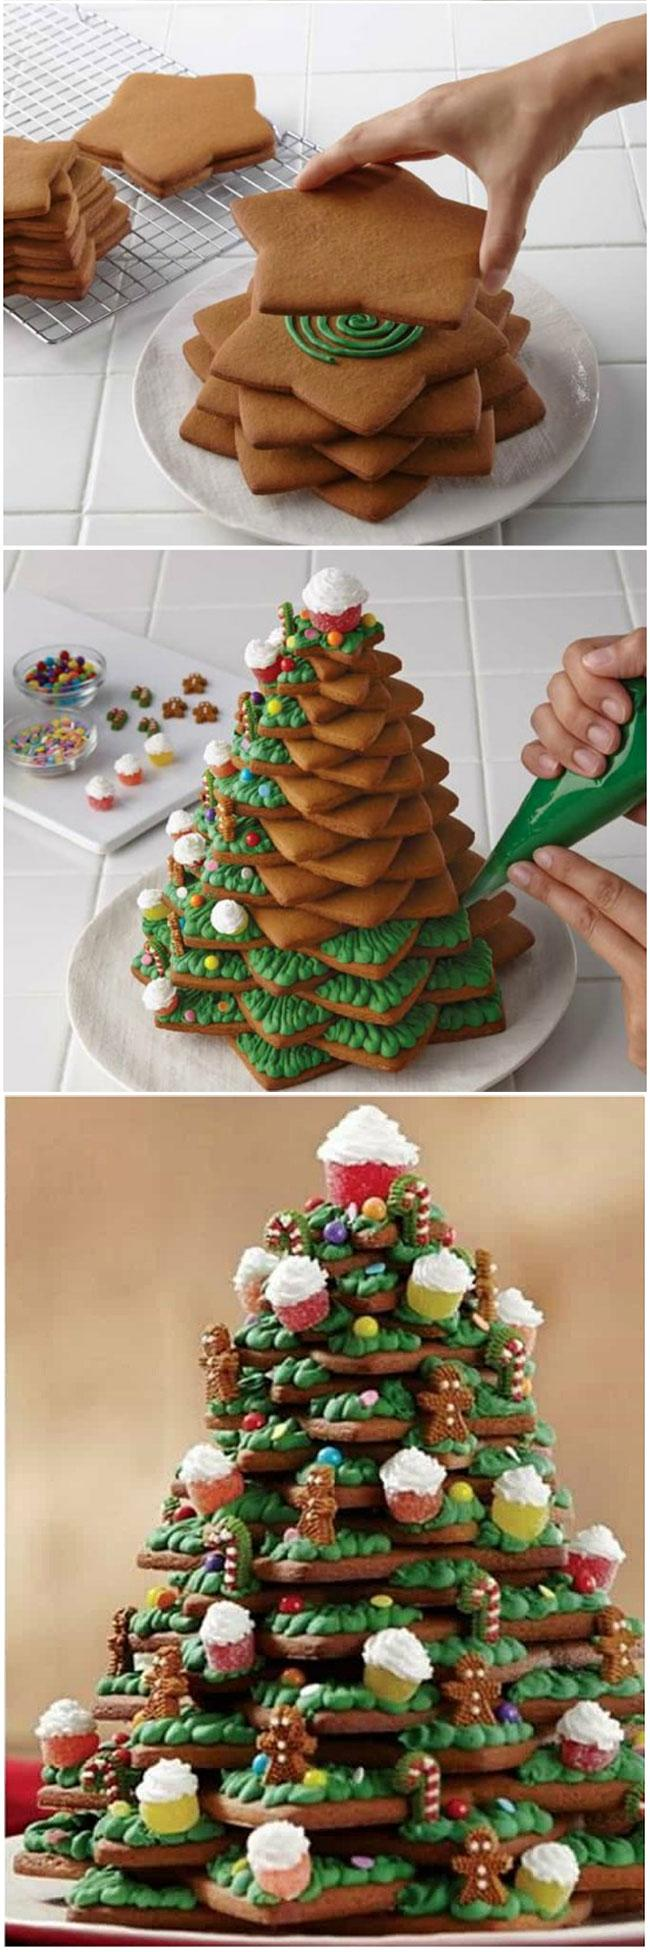 3D Gingerbread Cookie Christmas Tree